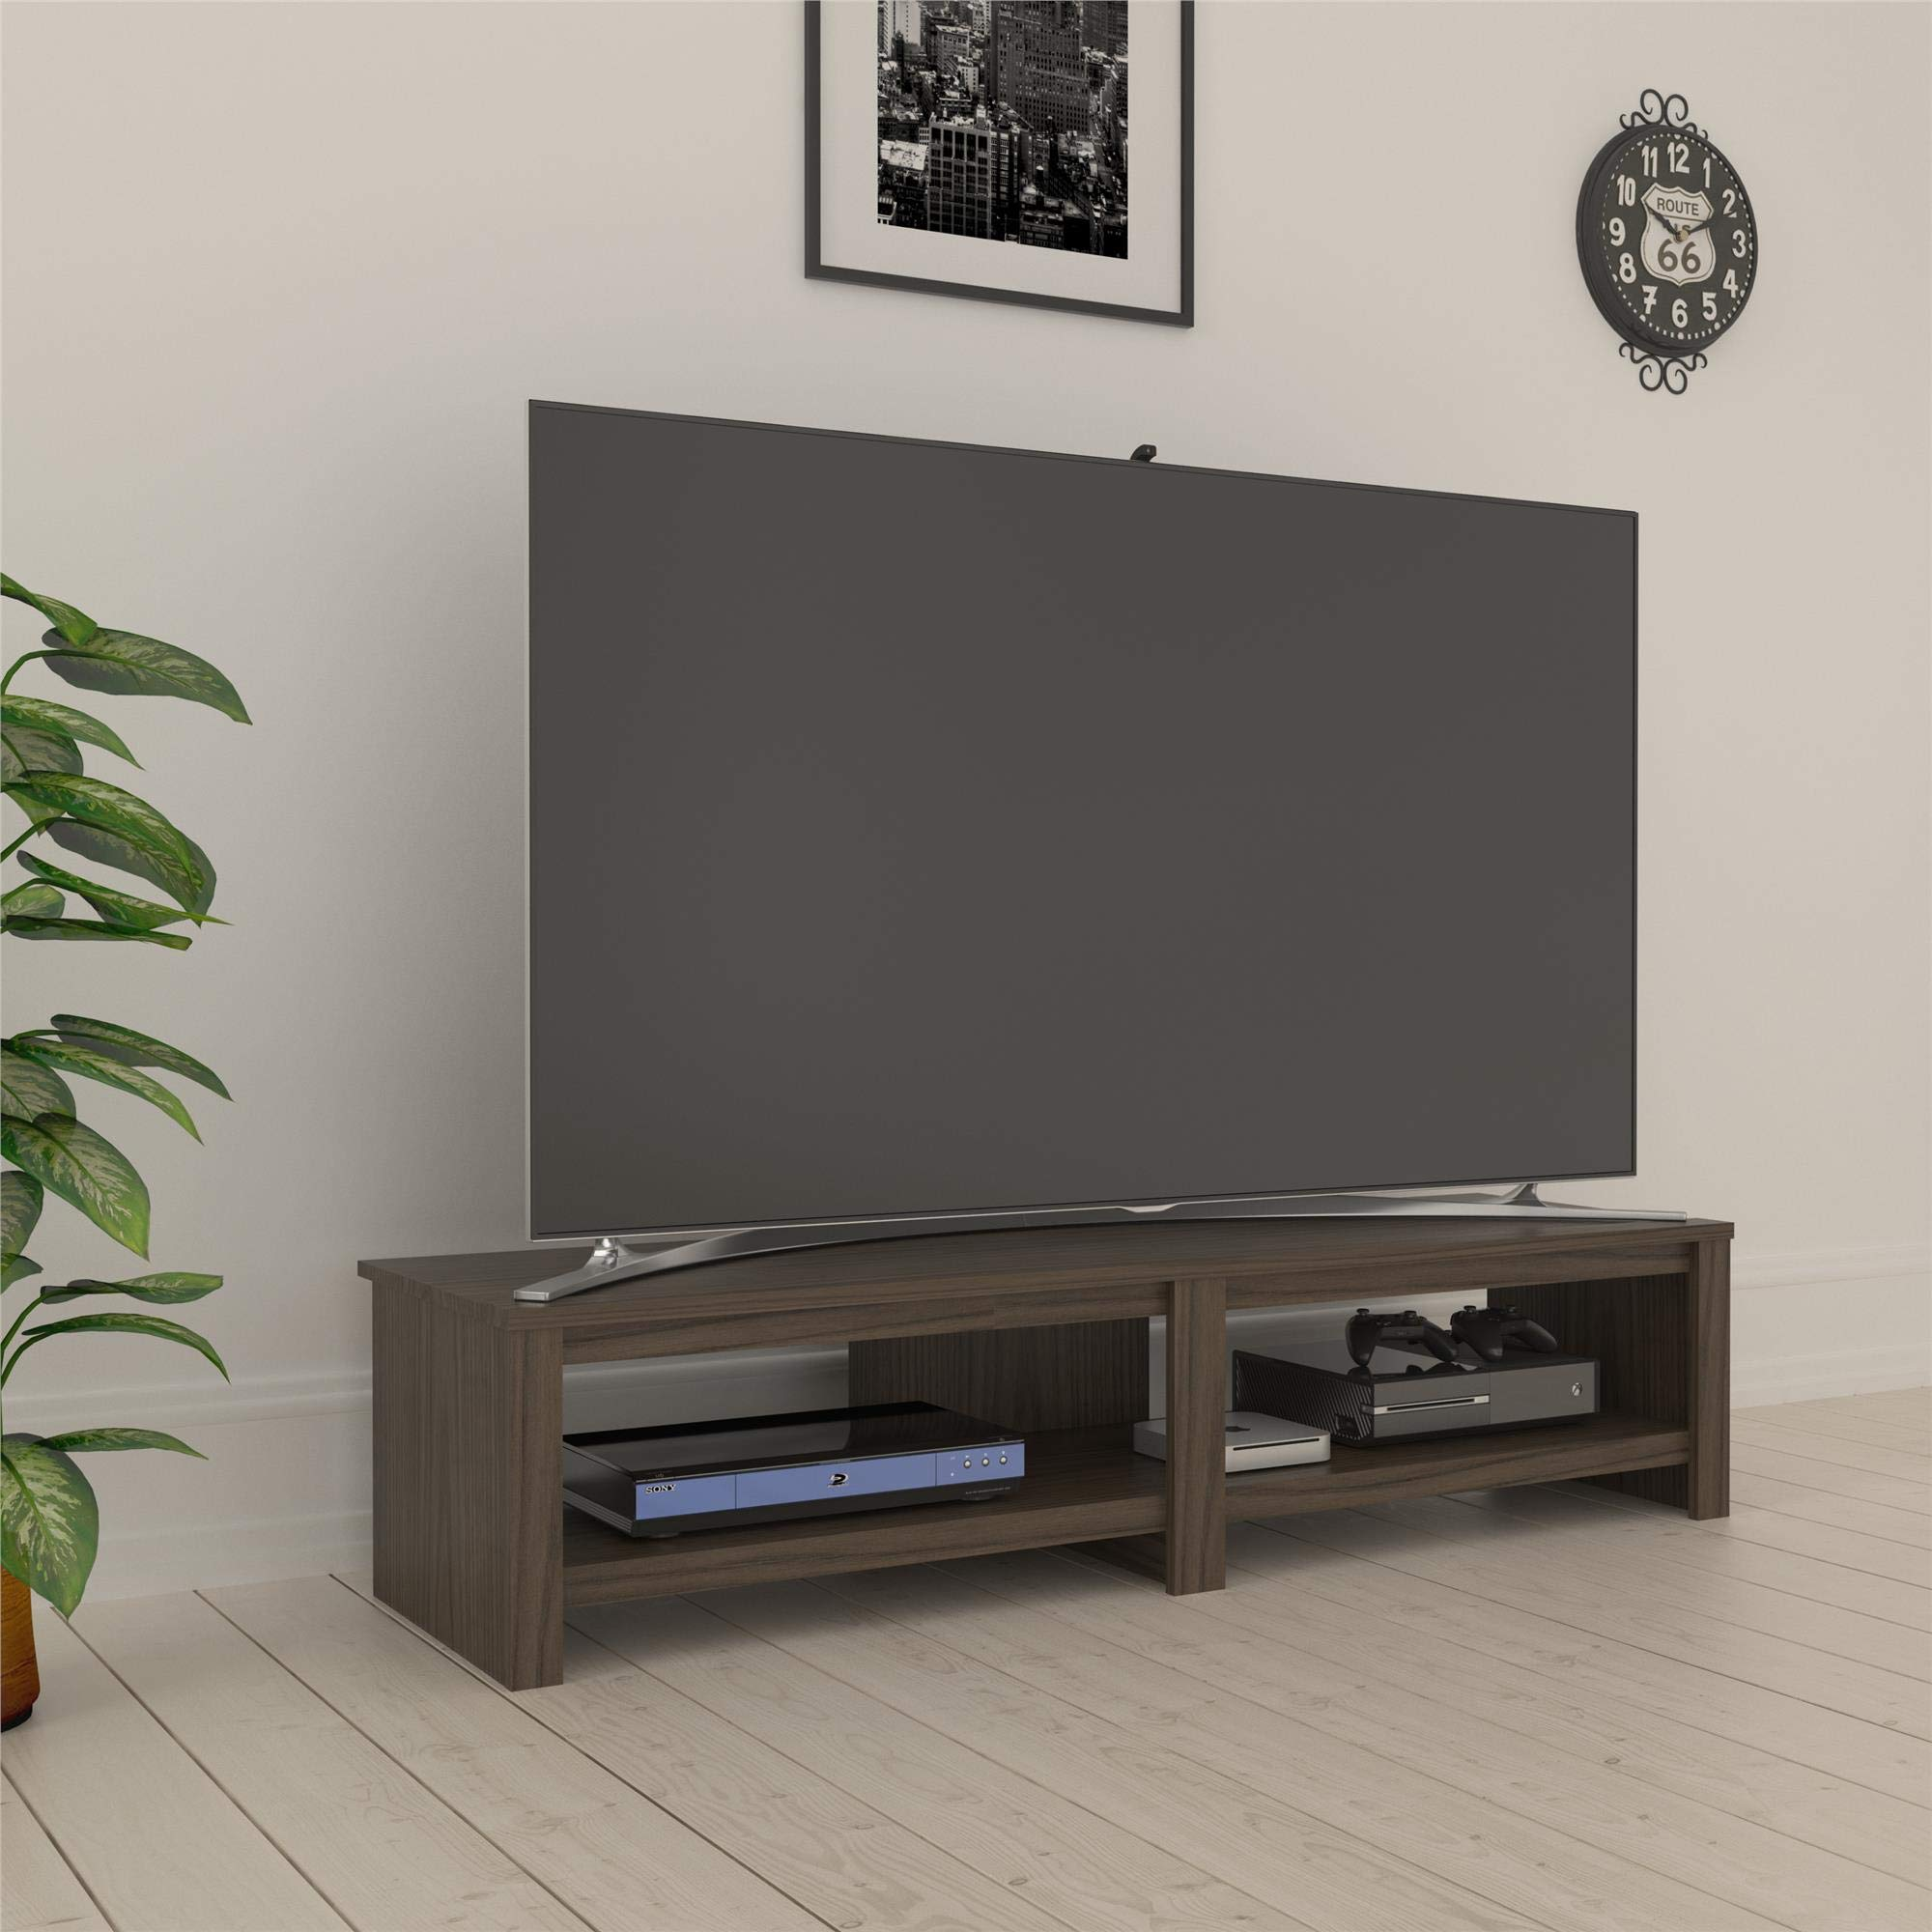 RealRooms Tally TV Stand for TVs up to 74'', Medium Brown